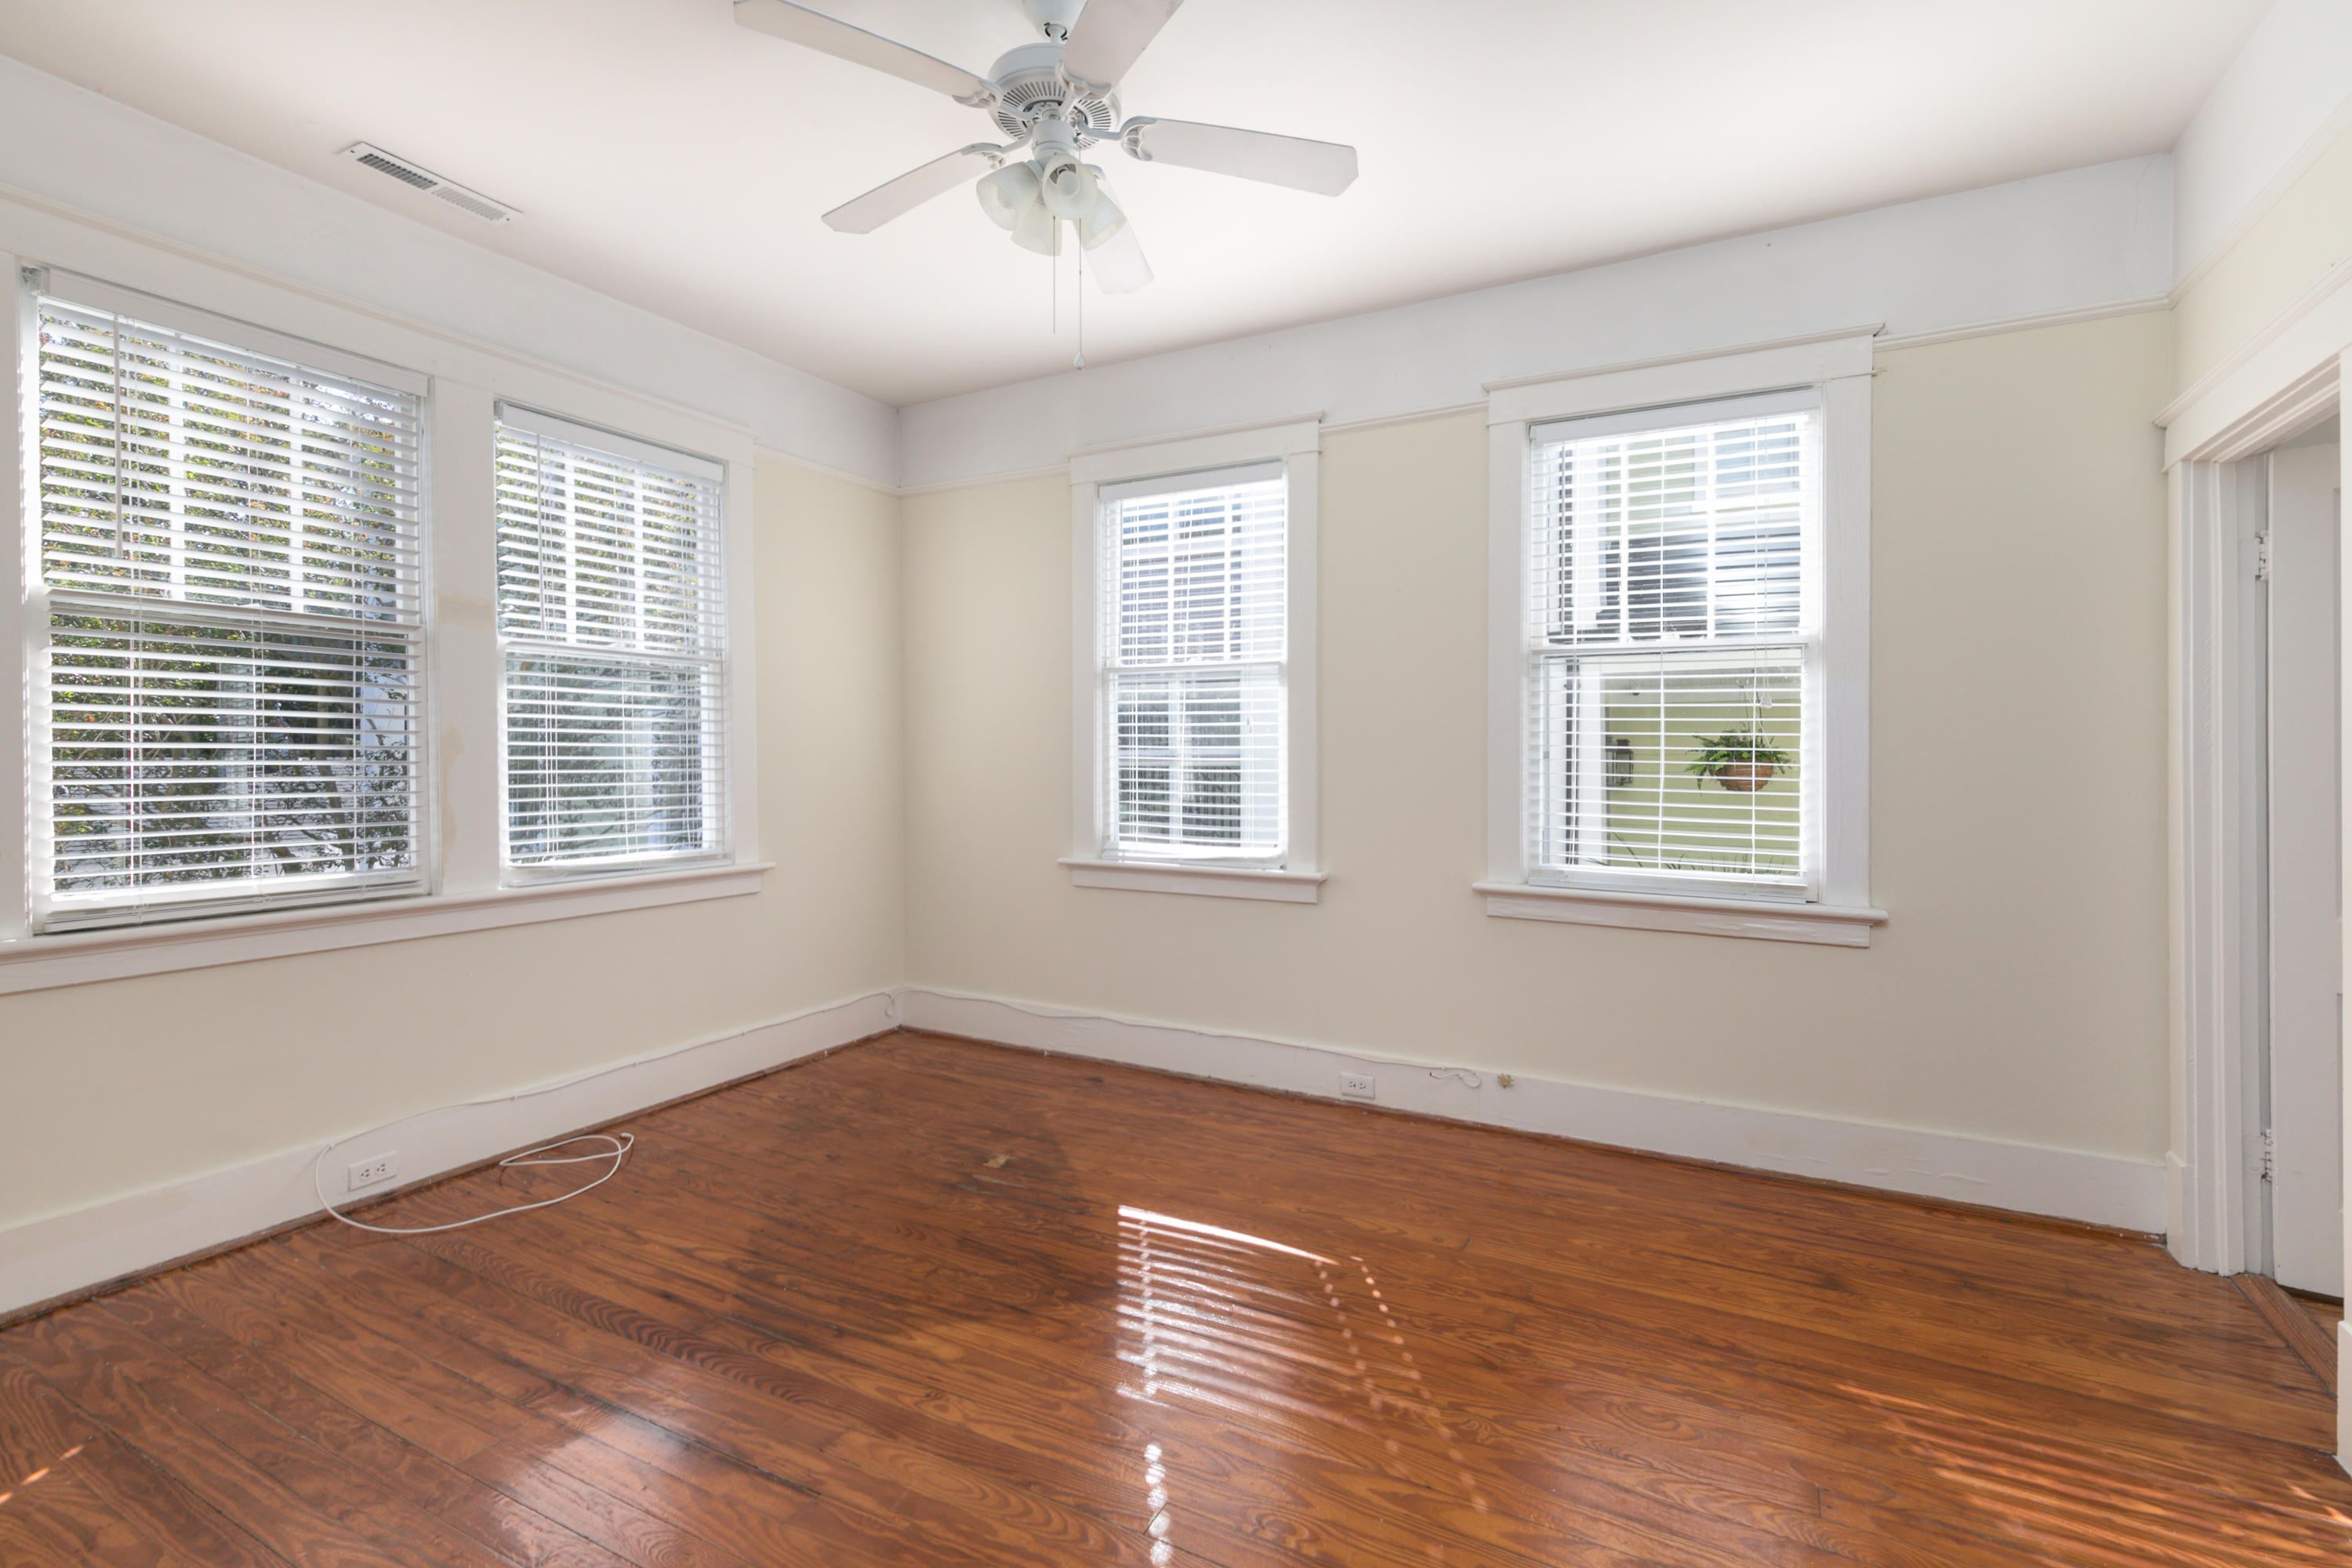 South of Broad Homes For Sale - 22 Council, Charleston, SC - 10